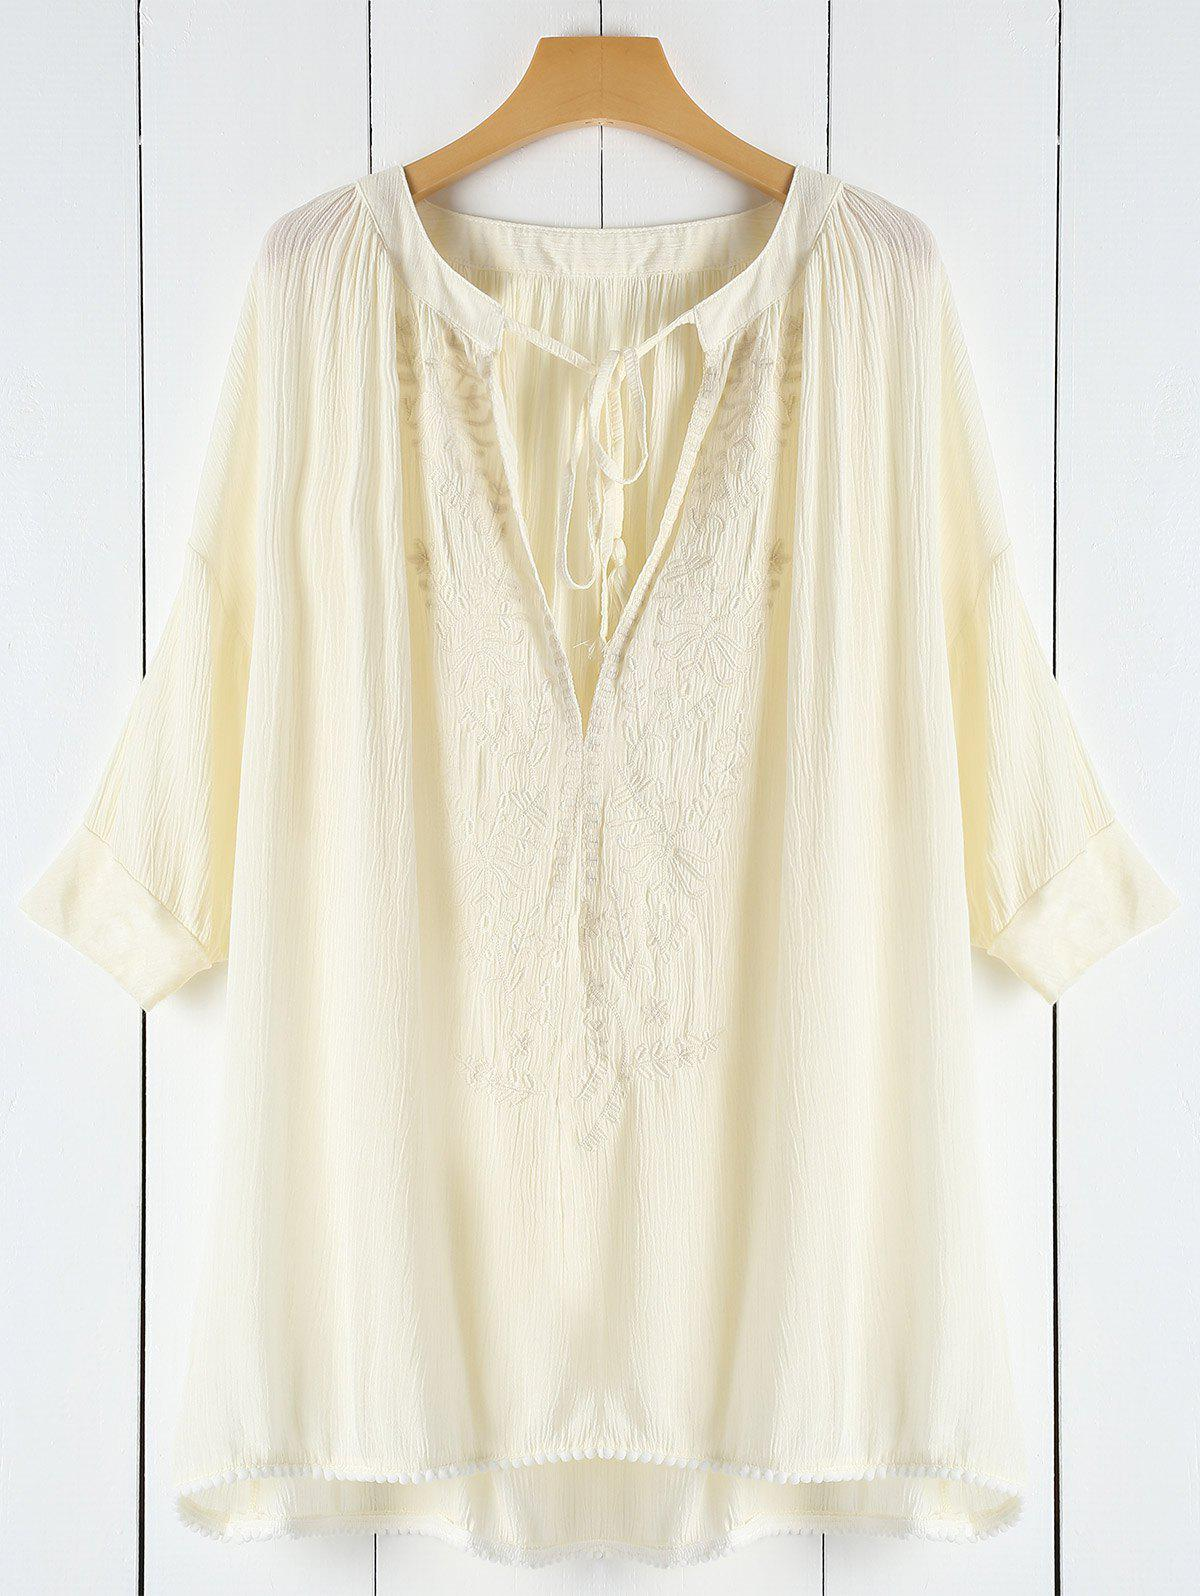 Shops Plunging Neck Lace See-Through Women's Cover-Up